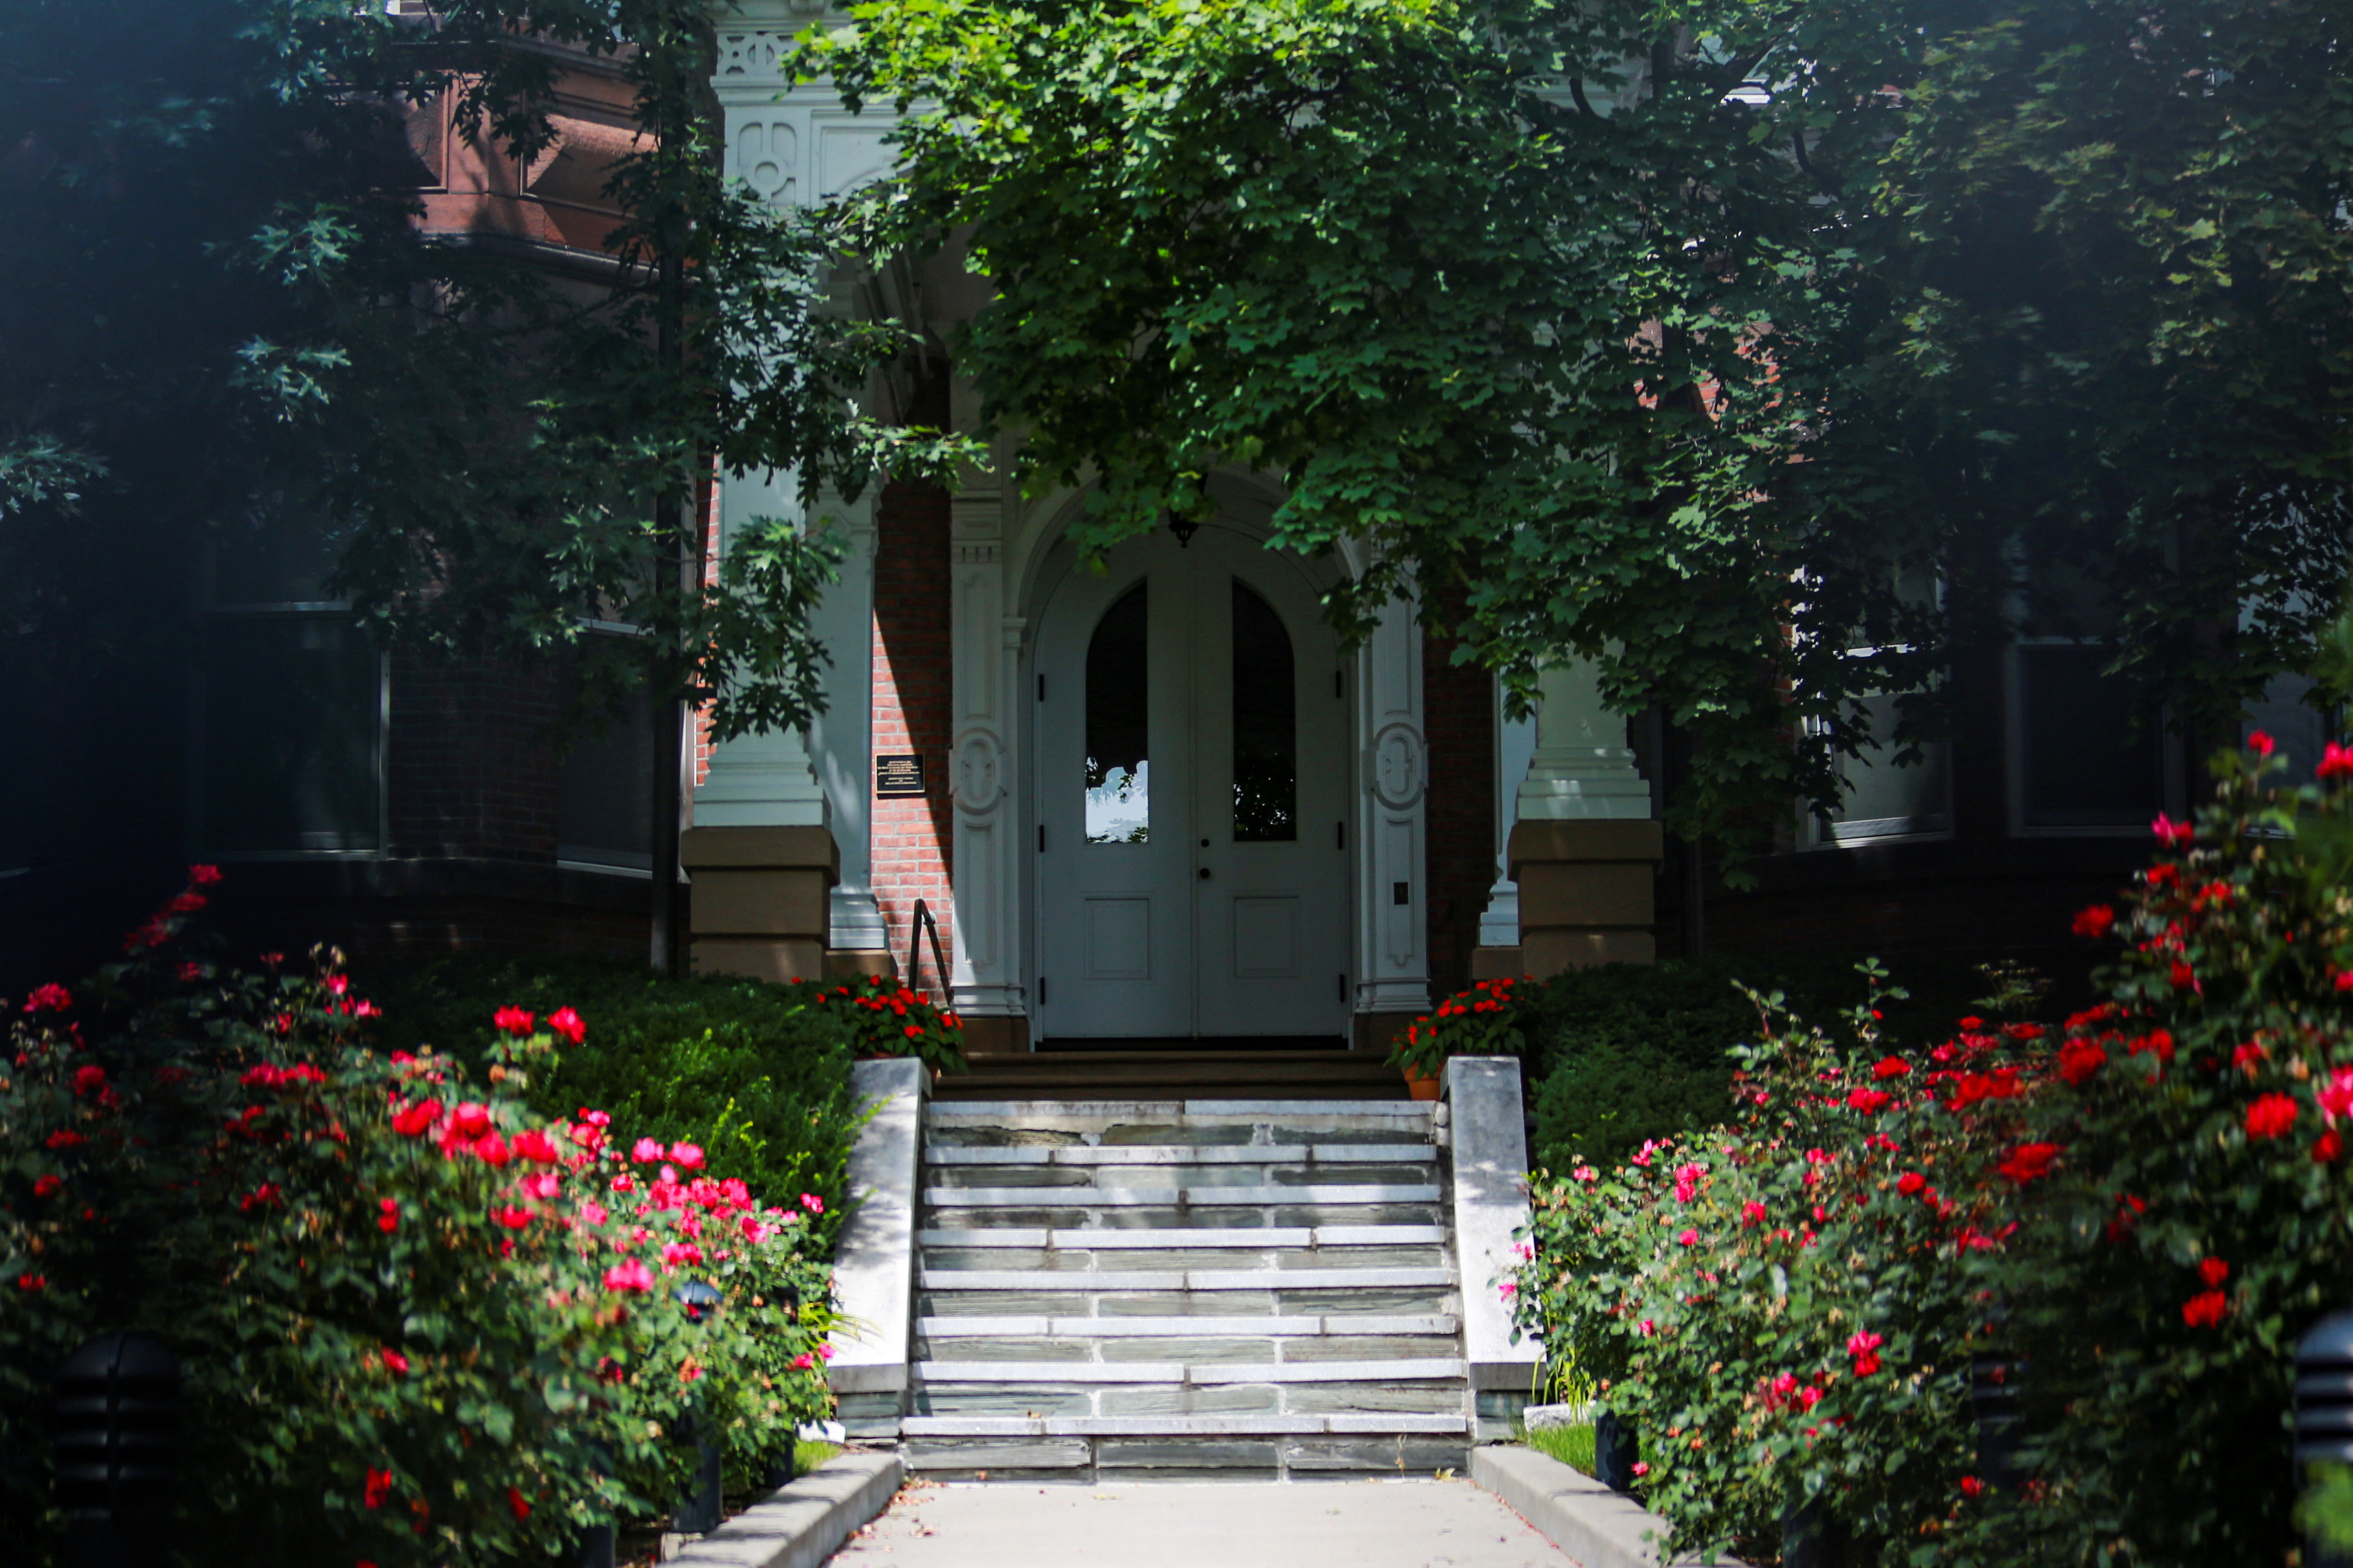 The front door to the New York State Governor's Mansion is seen, after an independent inquiry showed that Governor Andrew Cuomo sexually harassed multiple women and violated federal and state laws, in Albany, New York, U.S., August 3, 2021. REUTERS/Patrick Dodson